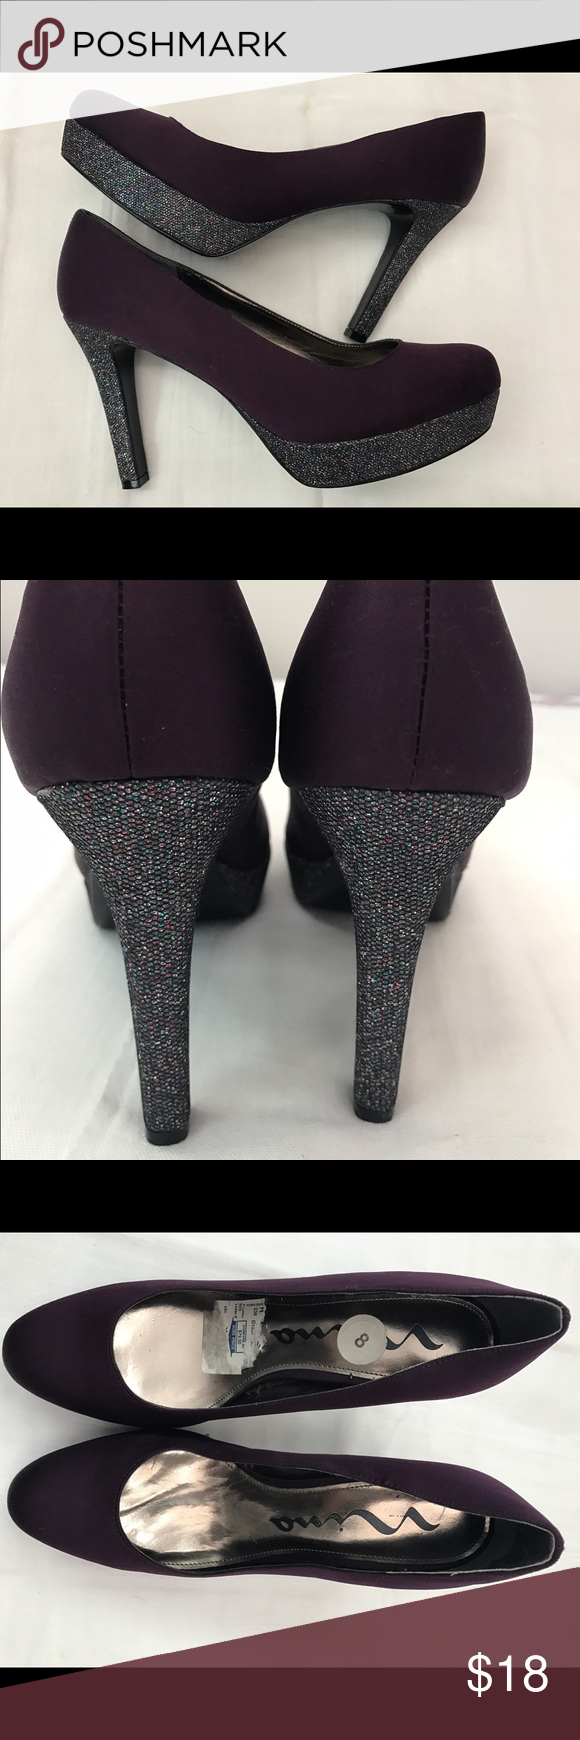 "NINA Sparkle Heel Platform Beautiful rich purple satin 4"" heel with sparkle platform and heel. Worn once. Request more pics if needed. Leather sole. Nina Shoes Heels"